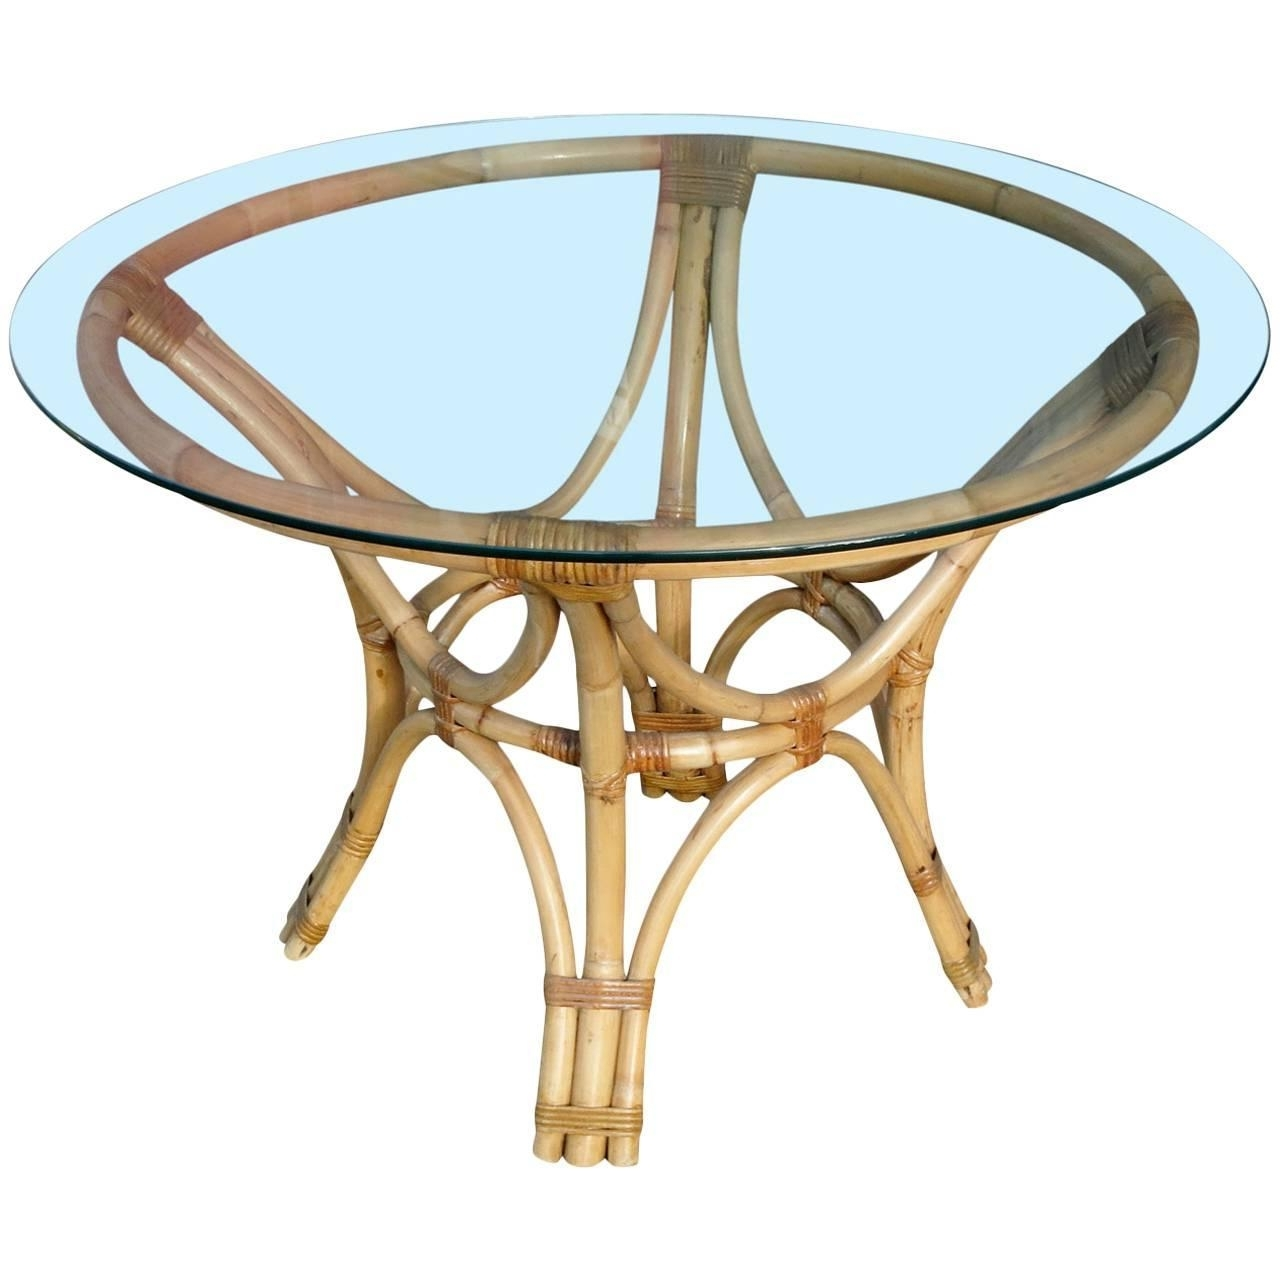 Wicker And Glass Dining Tables Within Trendy Restored Rattan Bentwood Dining Table With Round Glass Top For Sale (View 24 of 25)